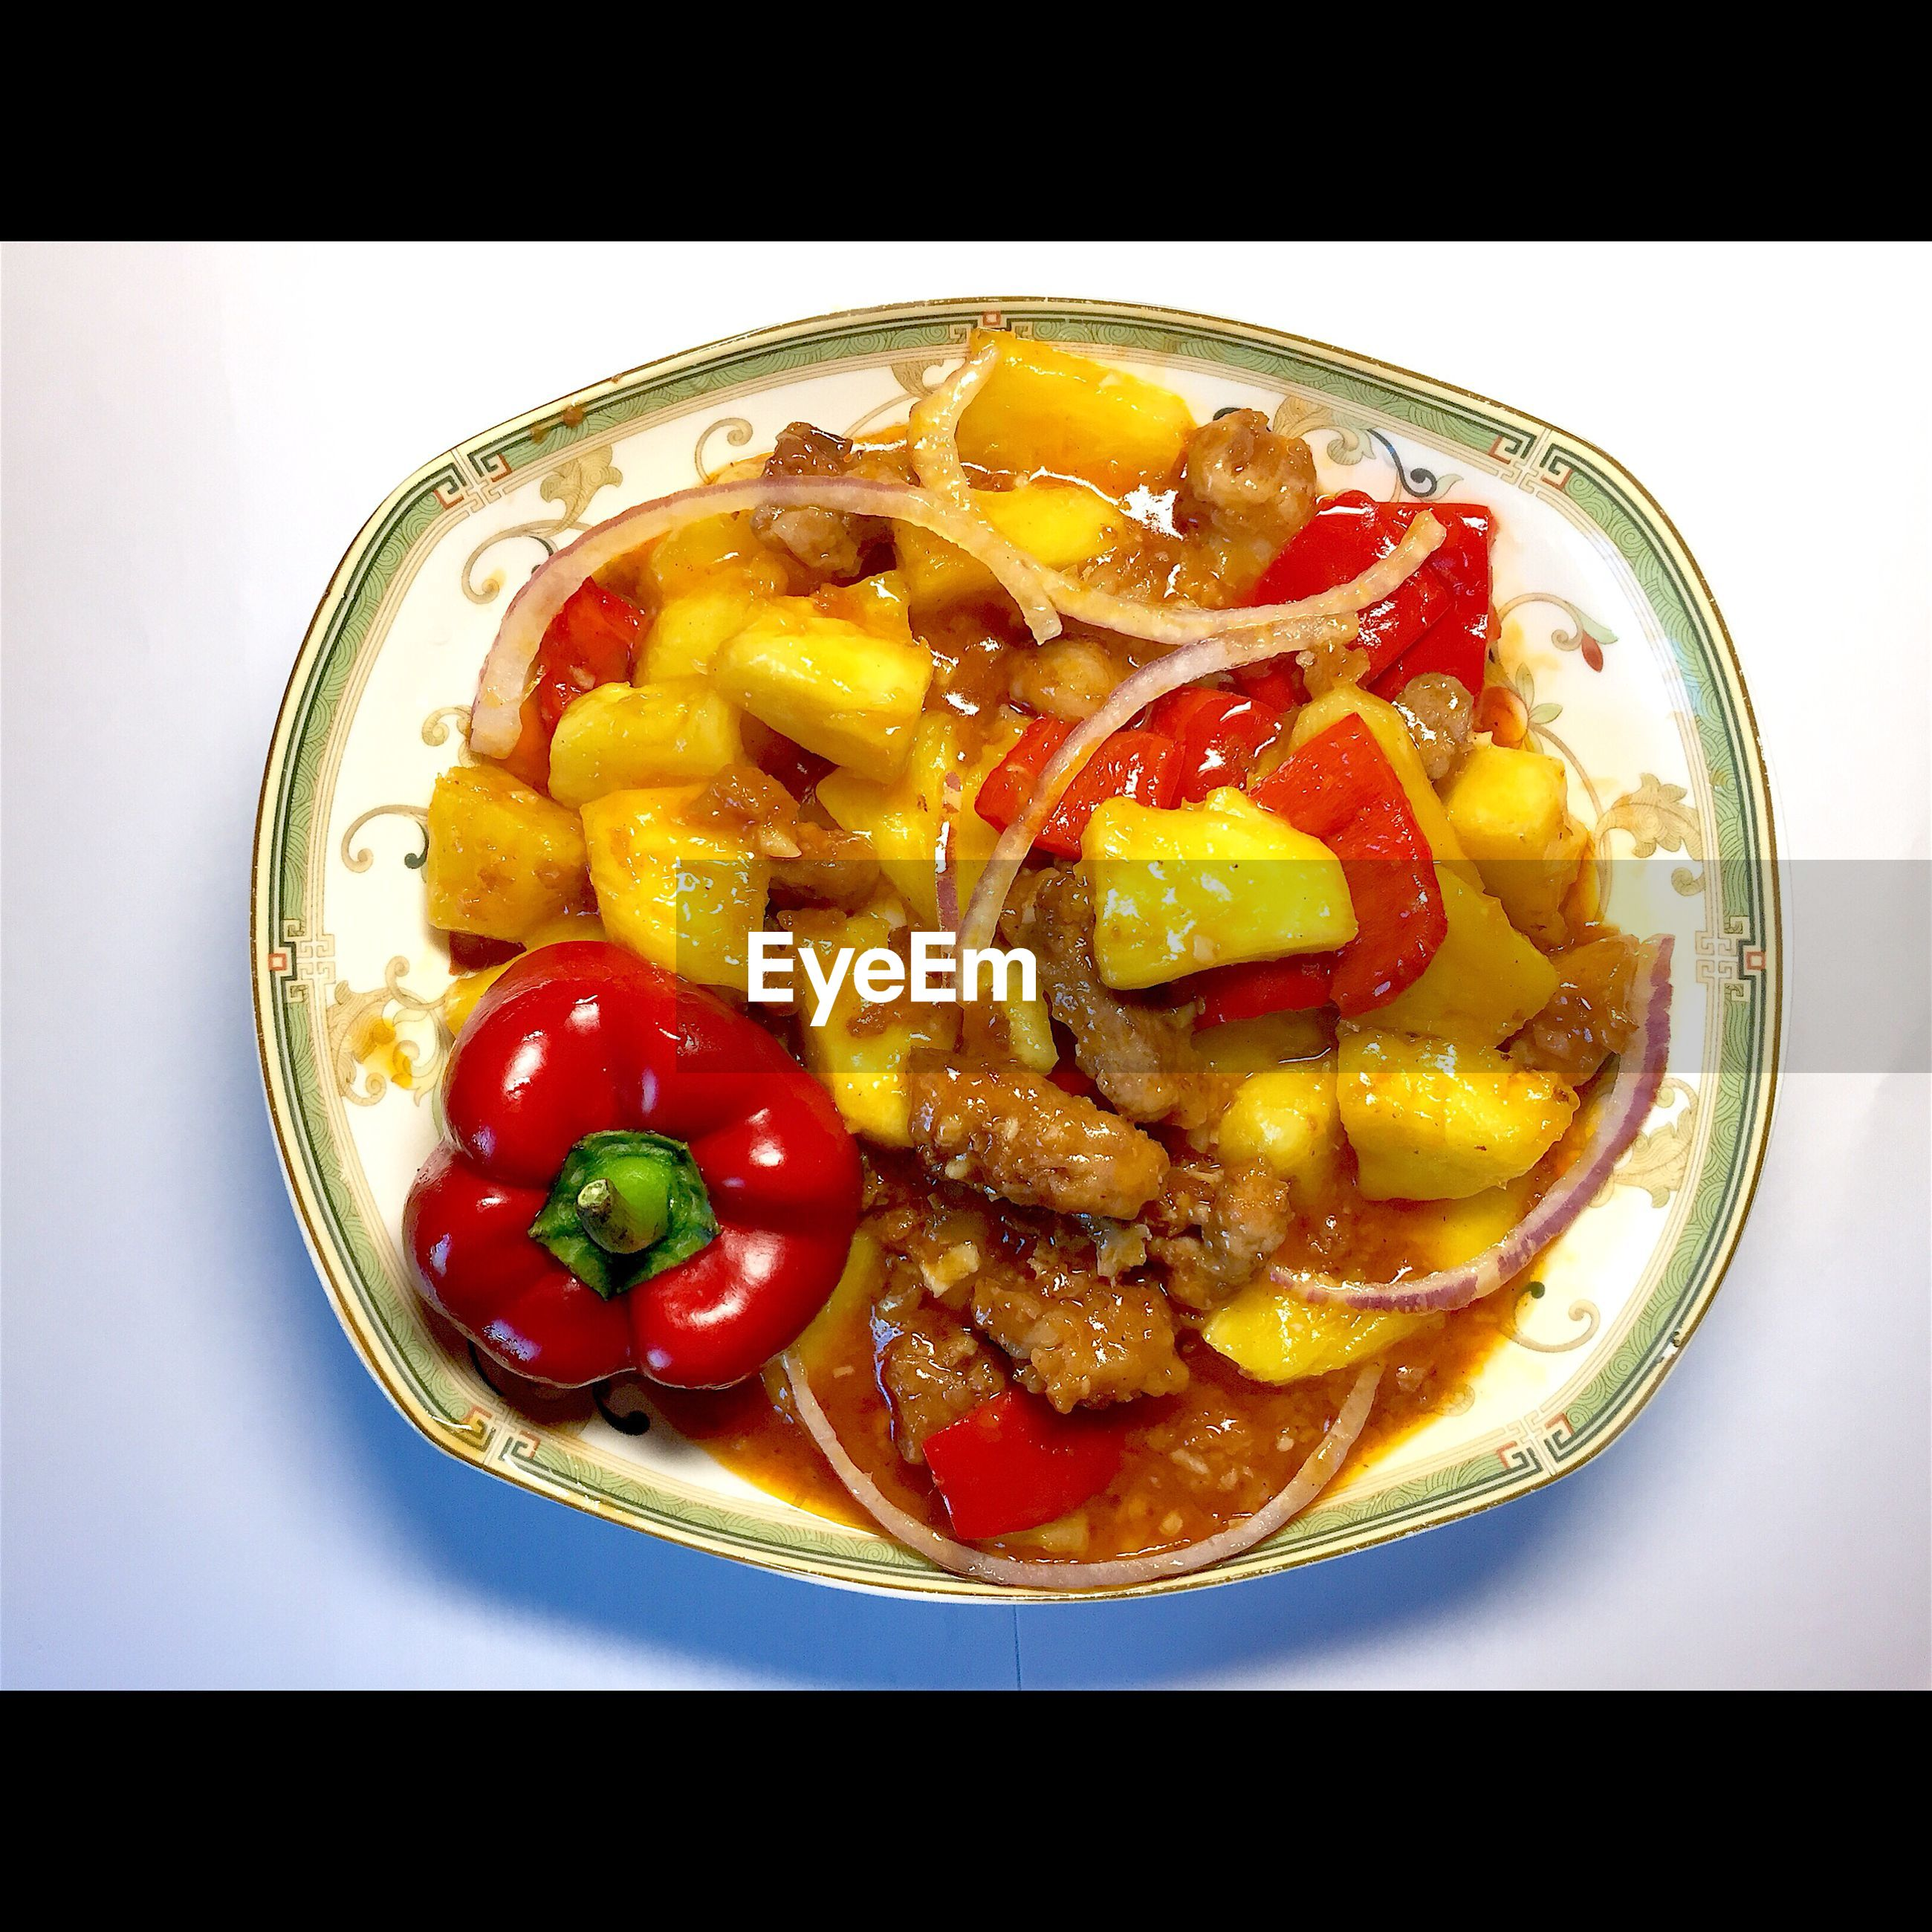 food, food and drink, freshness, indoors, ready-to-eat, plate, still life, healthy eating, serving size, meal, transfer print, table, indulgence, close-up, slice, auto post production filter, high angle view, directly above, meat, garnish